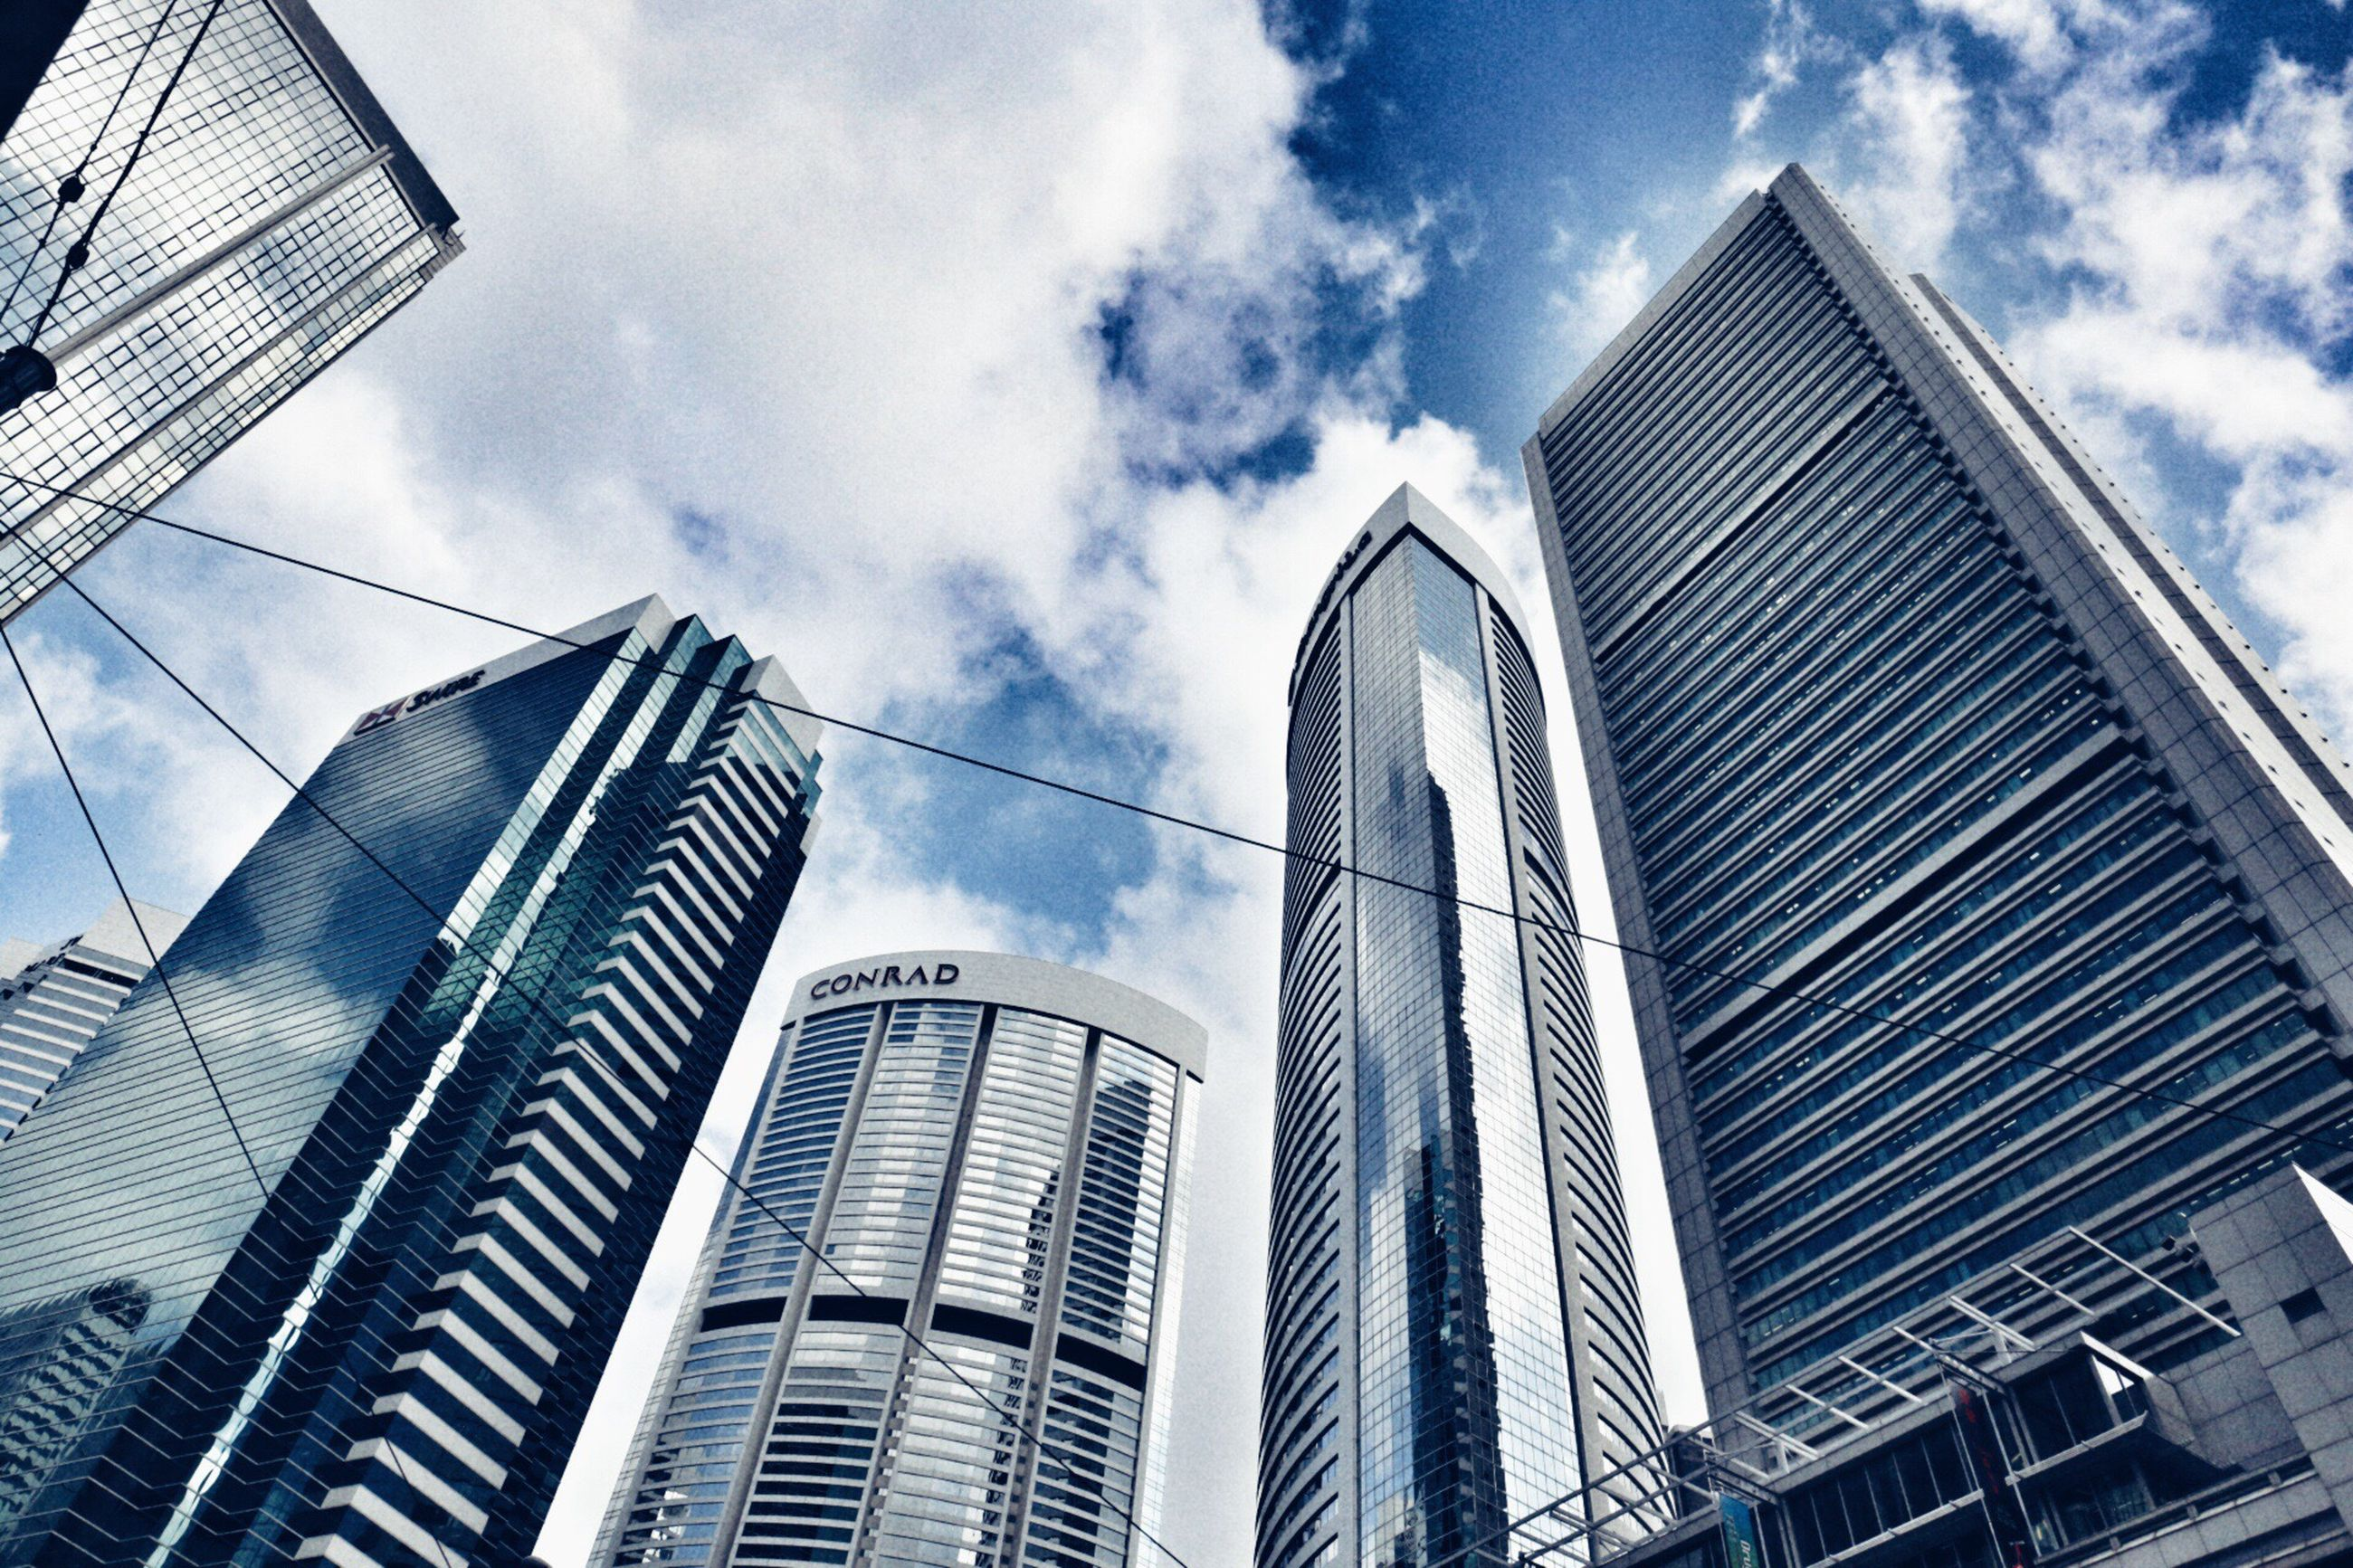 low angle view, architecture, built structure, skyscraper, tall - high, building exterior, tower, city, sky, office building, modern, cloud, tall, outdoors, spire, cloud - sky, building story, growth, day, capital cities, blue, financial district, urban skyline, no people